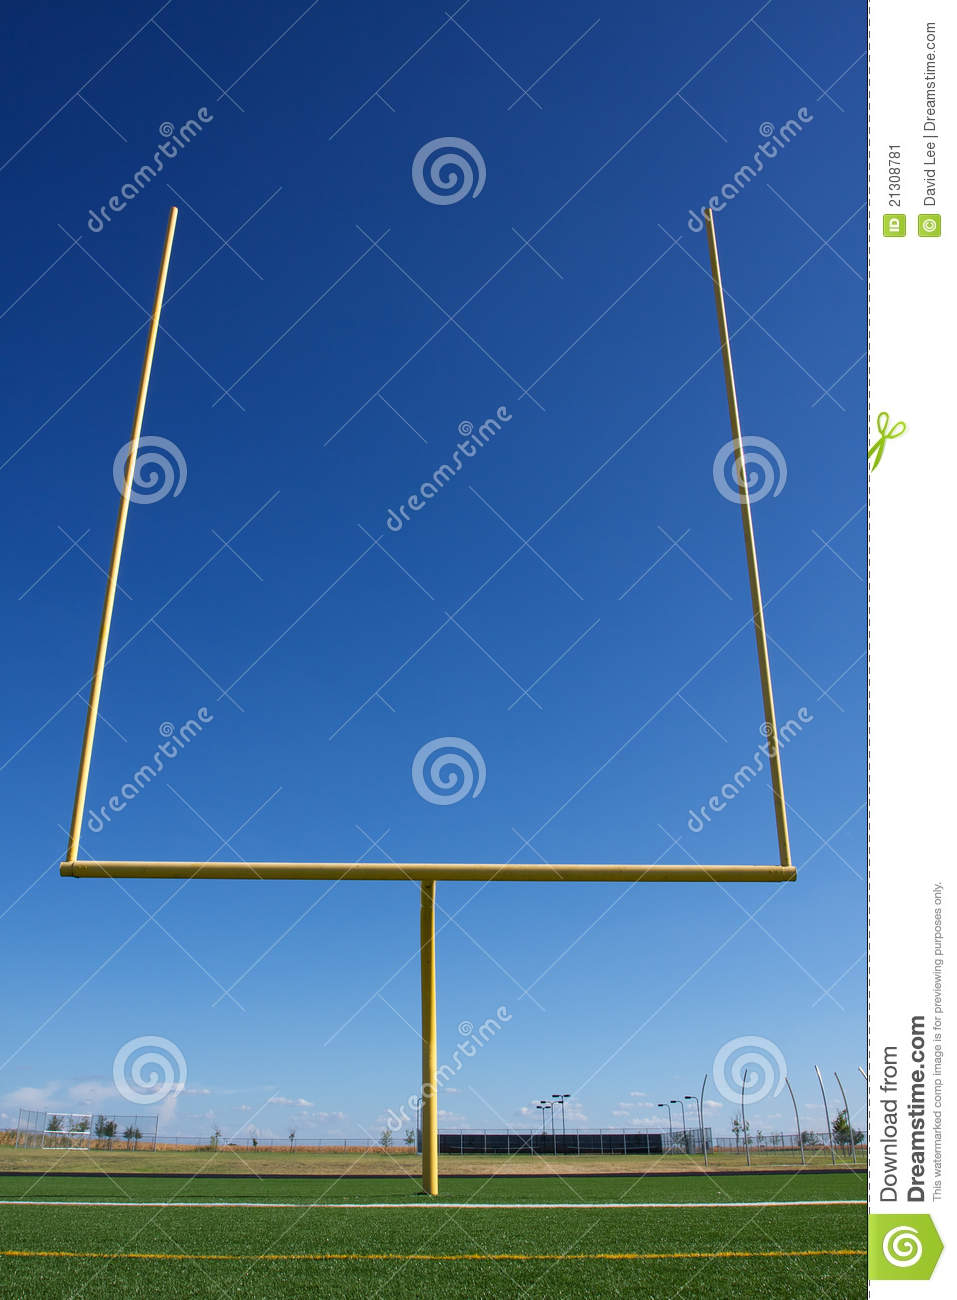 American Football Field Goal Posts Stock Image - Image: 21308781